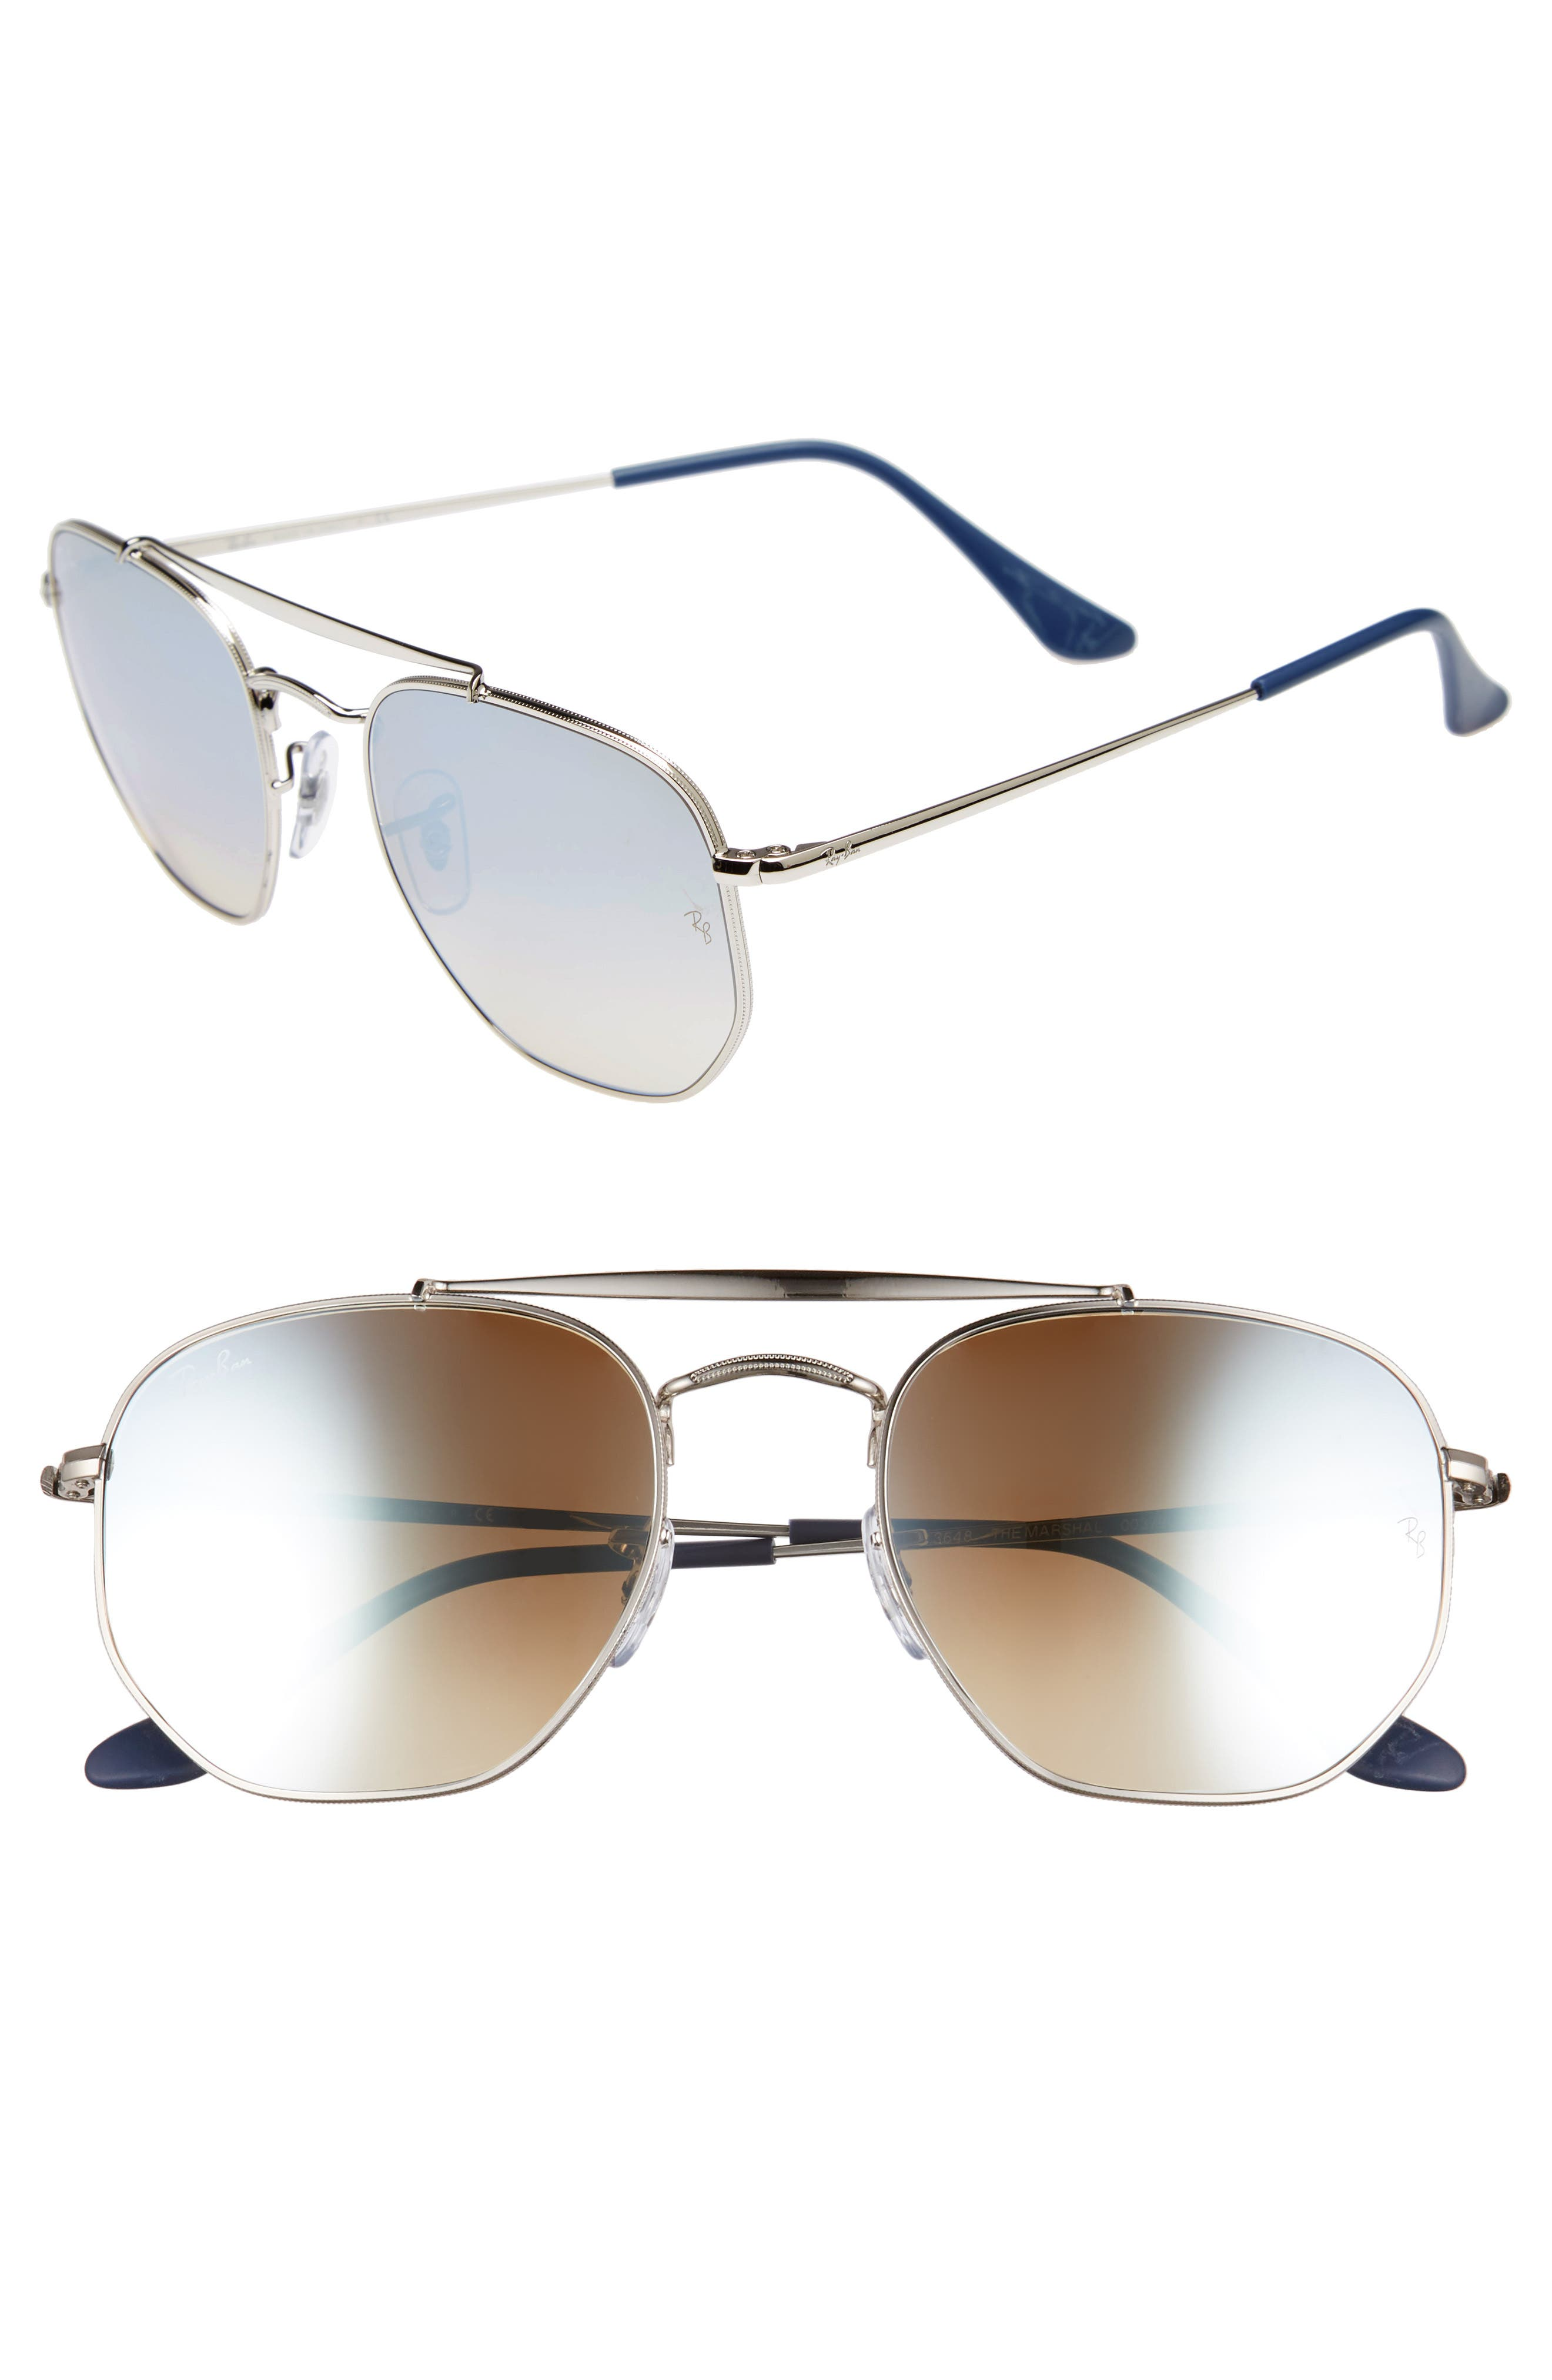 Marshal 54mm Aviator Sunglasses,                         Main,                         color, SILVER